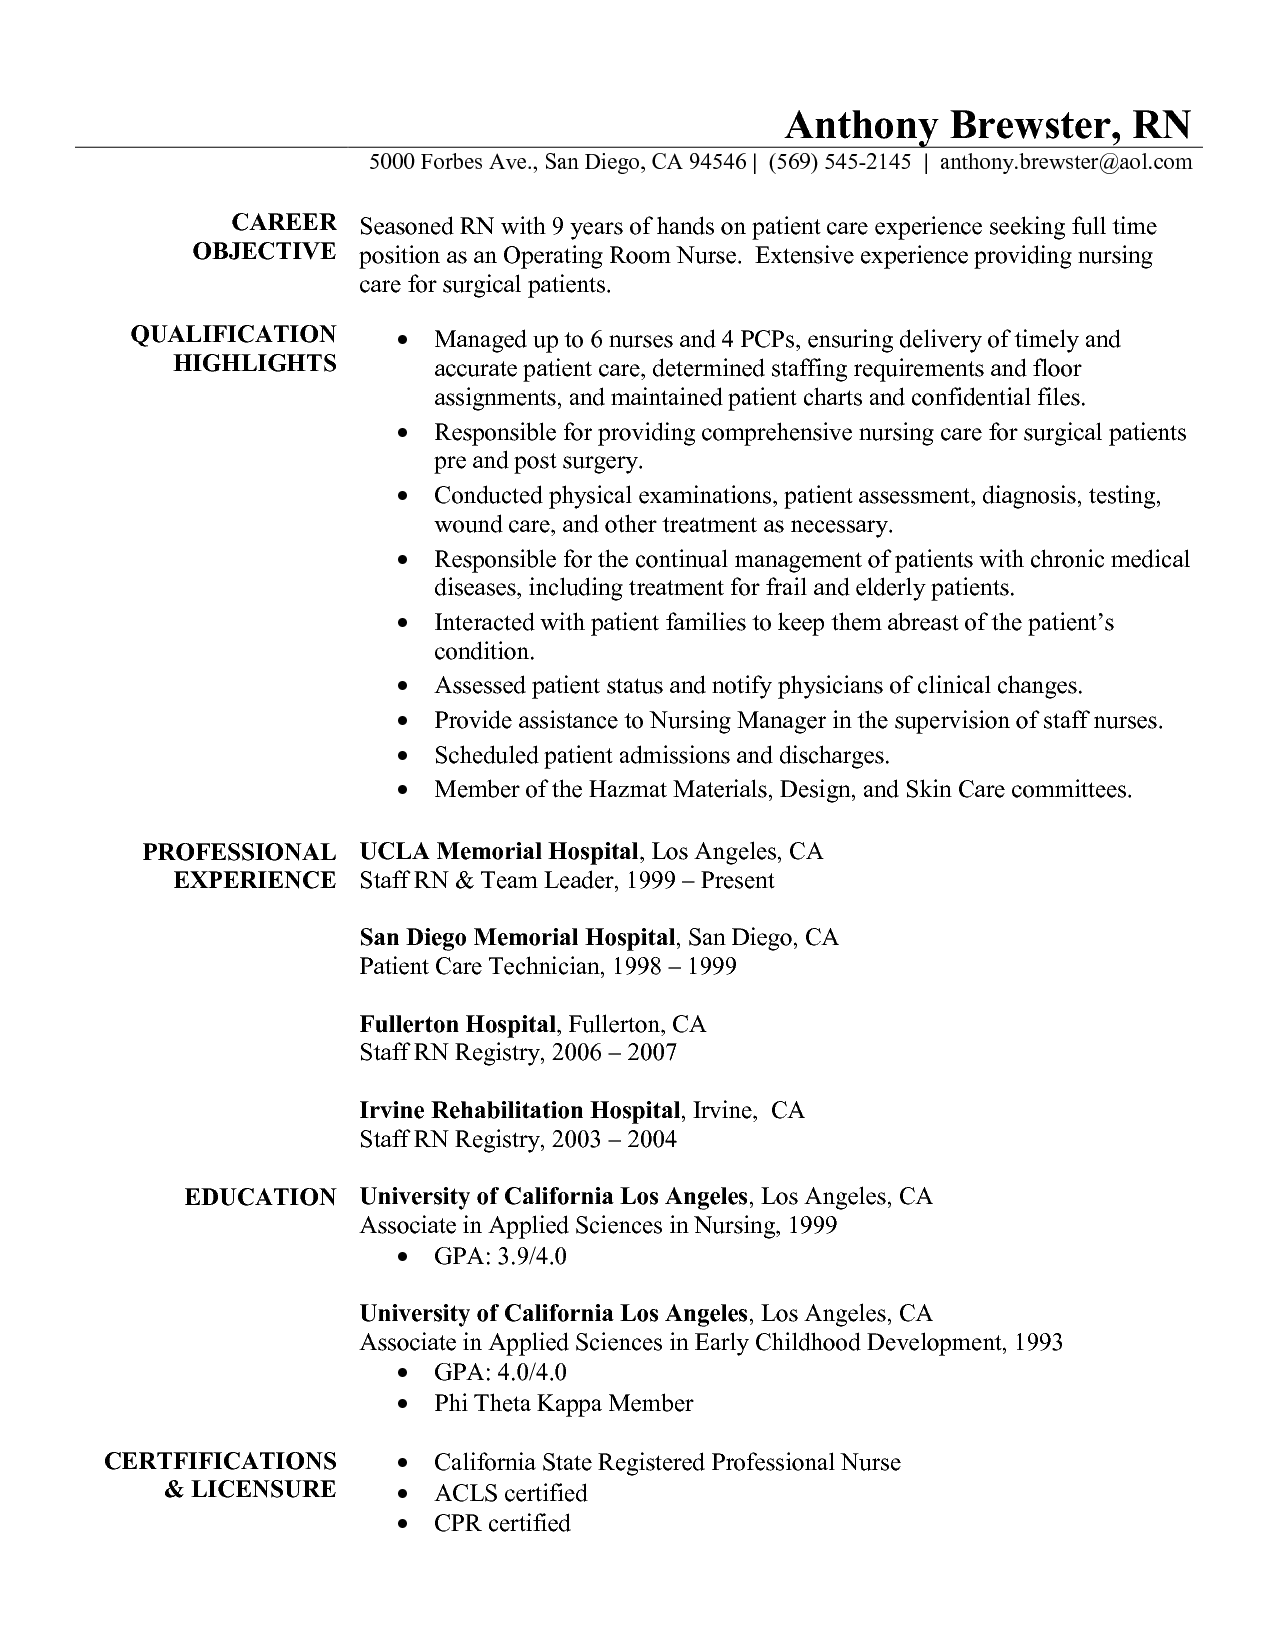 Professional Nursing Resume Curriculum Vitae Template Nurse  Google Search  Wade Resume